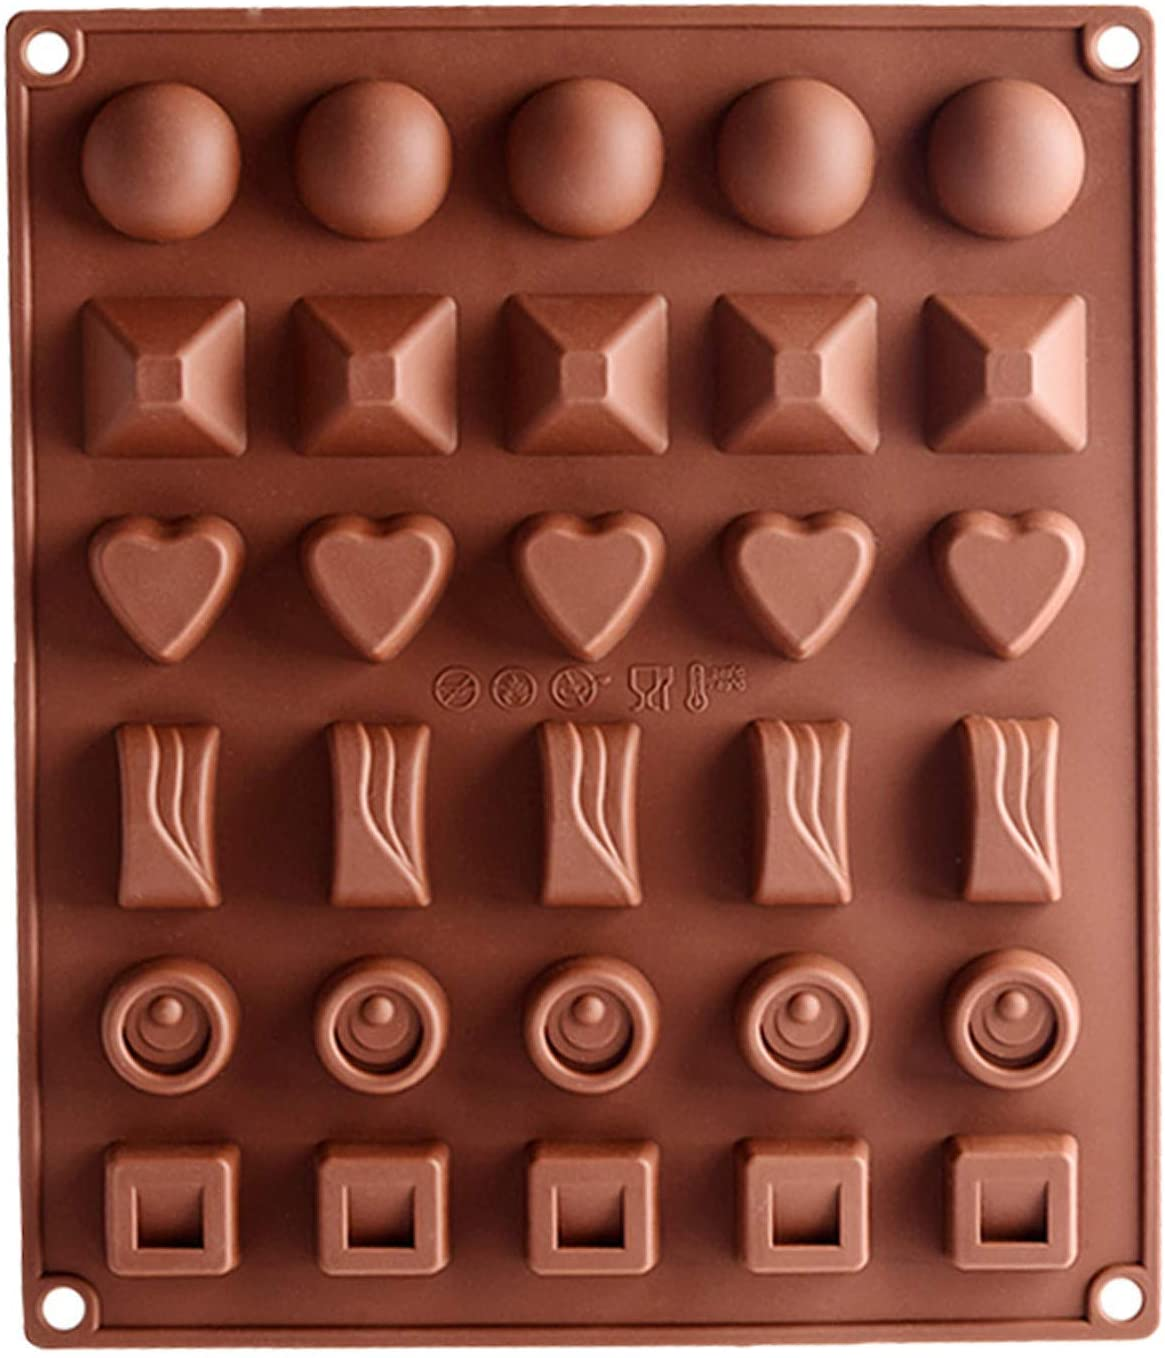 30 Holes Chocolate Molds Gummy Molds Silicone - Candy Mold and Silicone Ice Cube Tray Nonstick Including Hearts, Stars